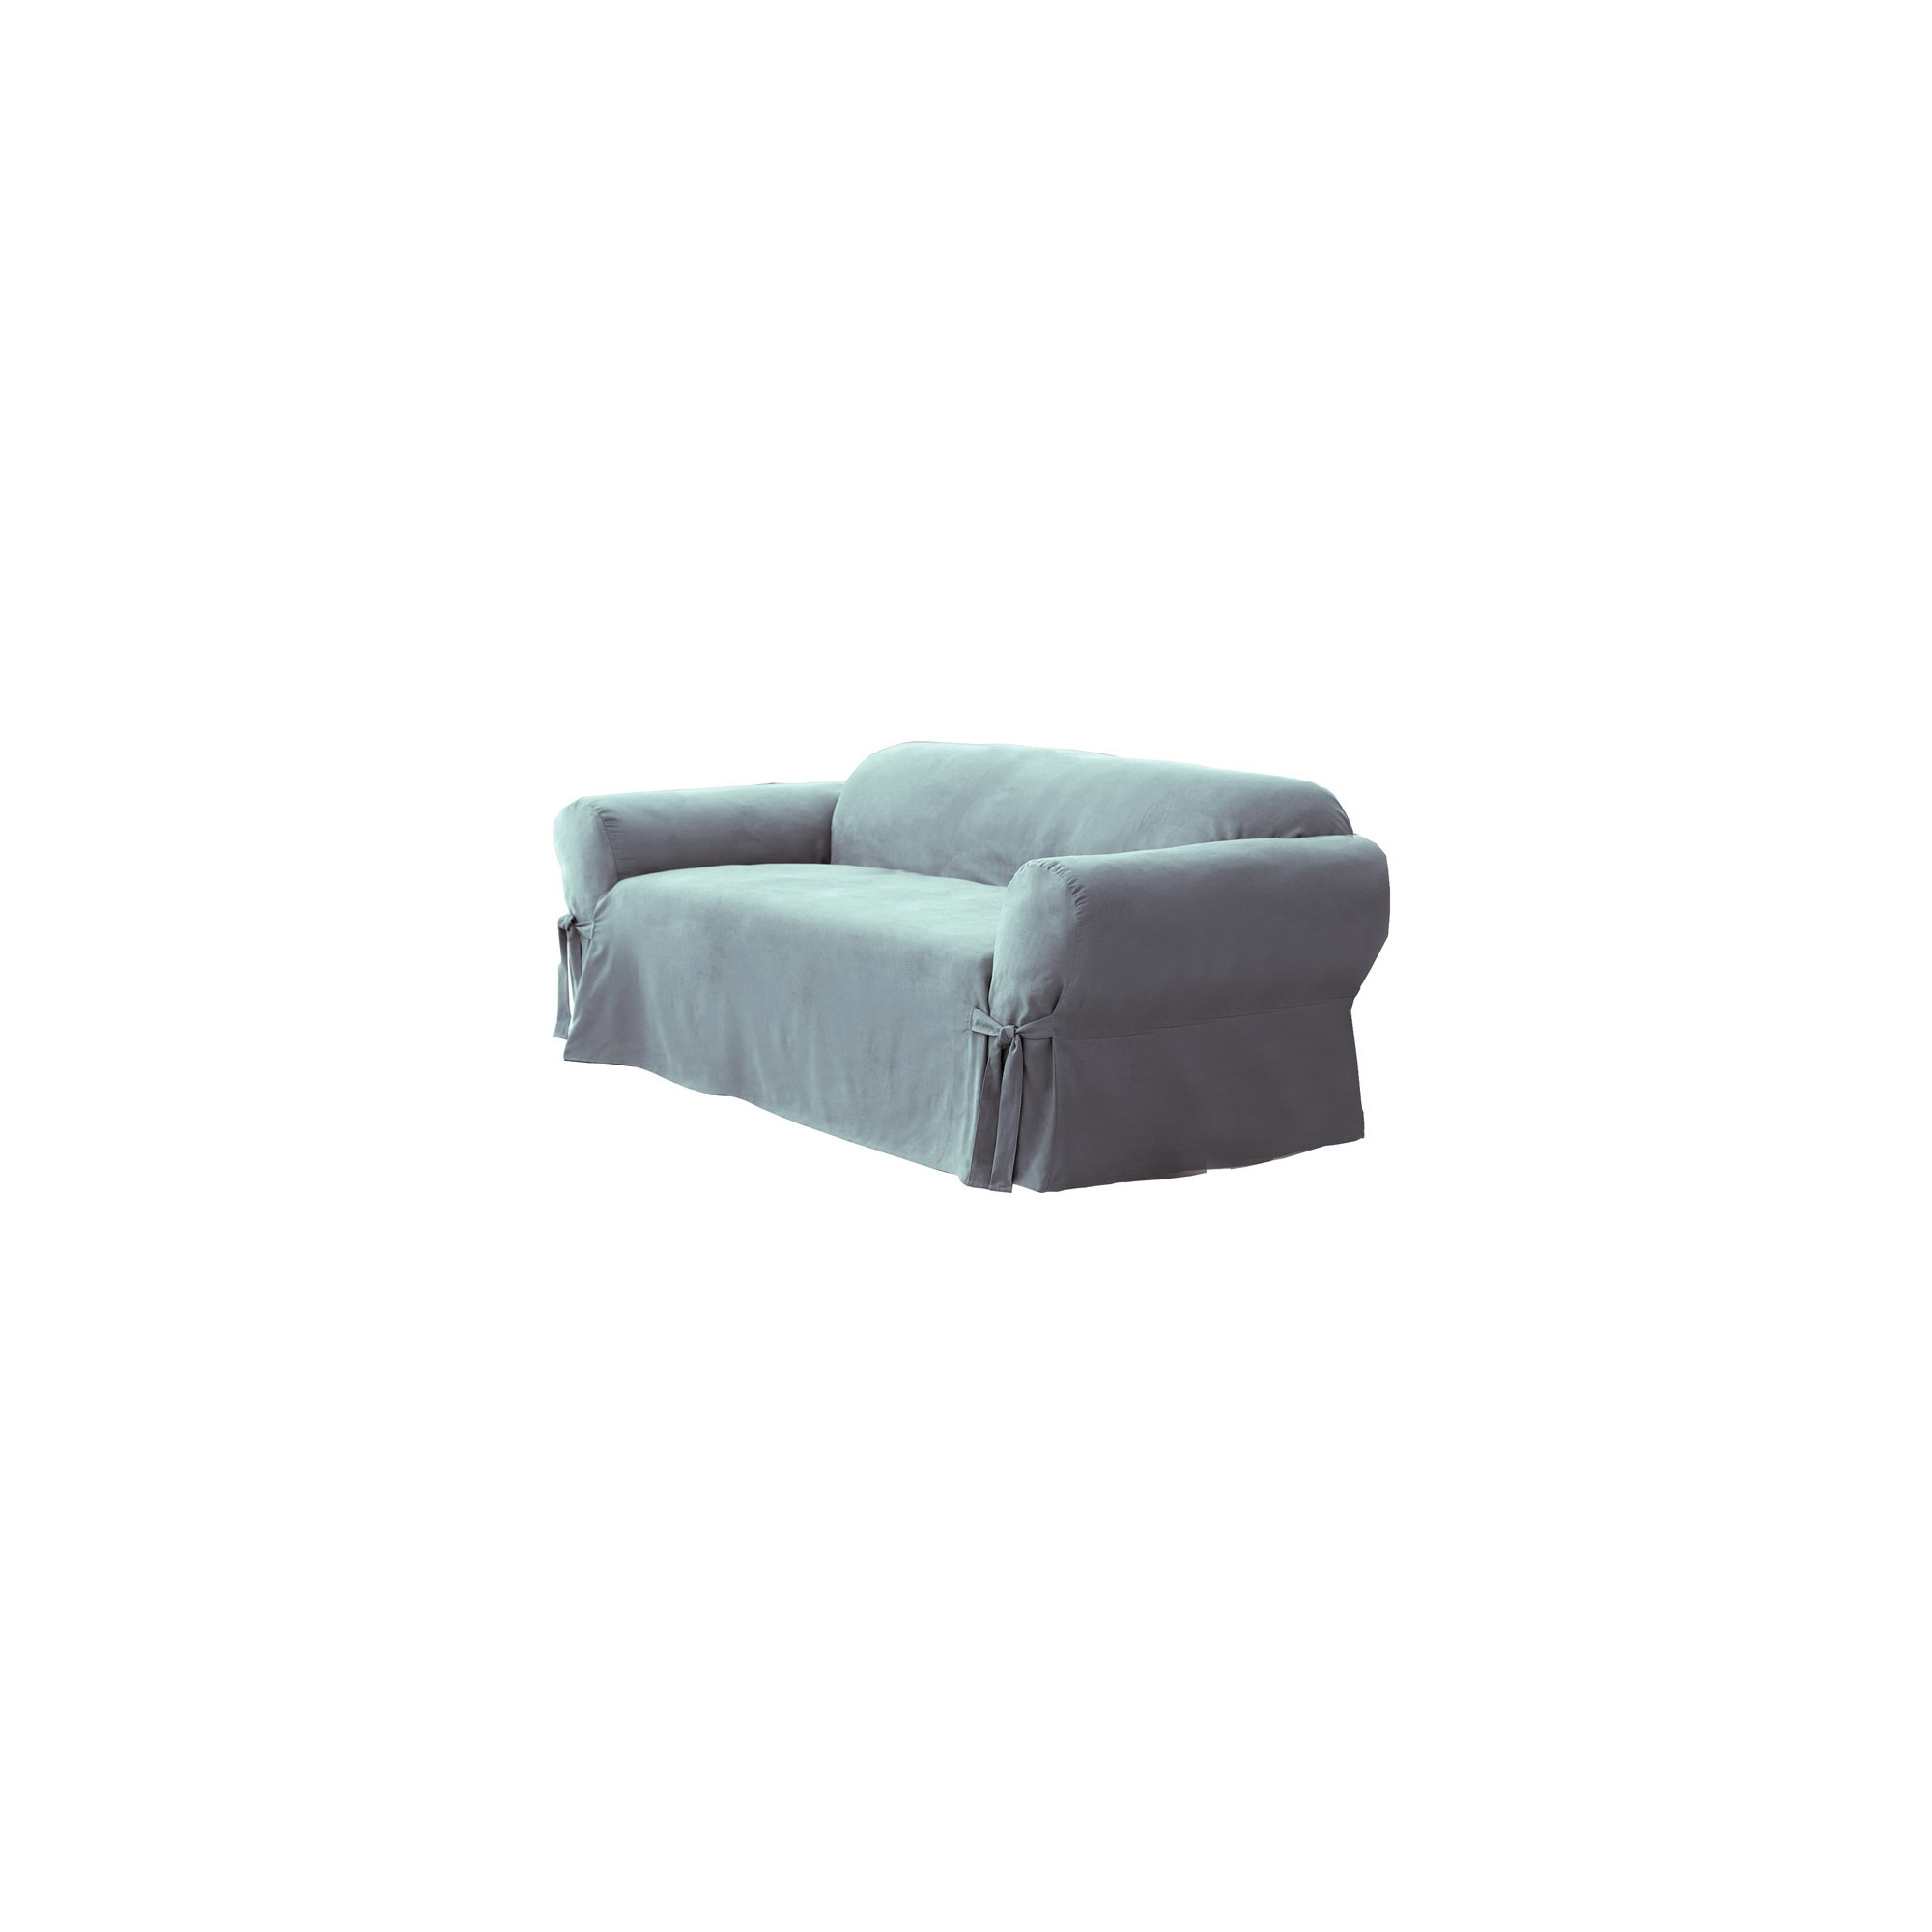 Soft Suede Sofa Slipcover Smoke Blue - Sure Fit, Grey Blue